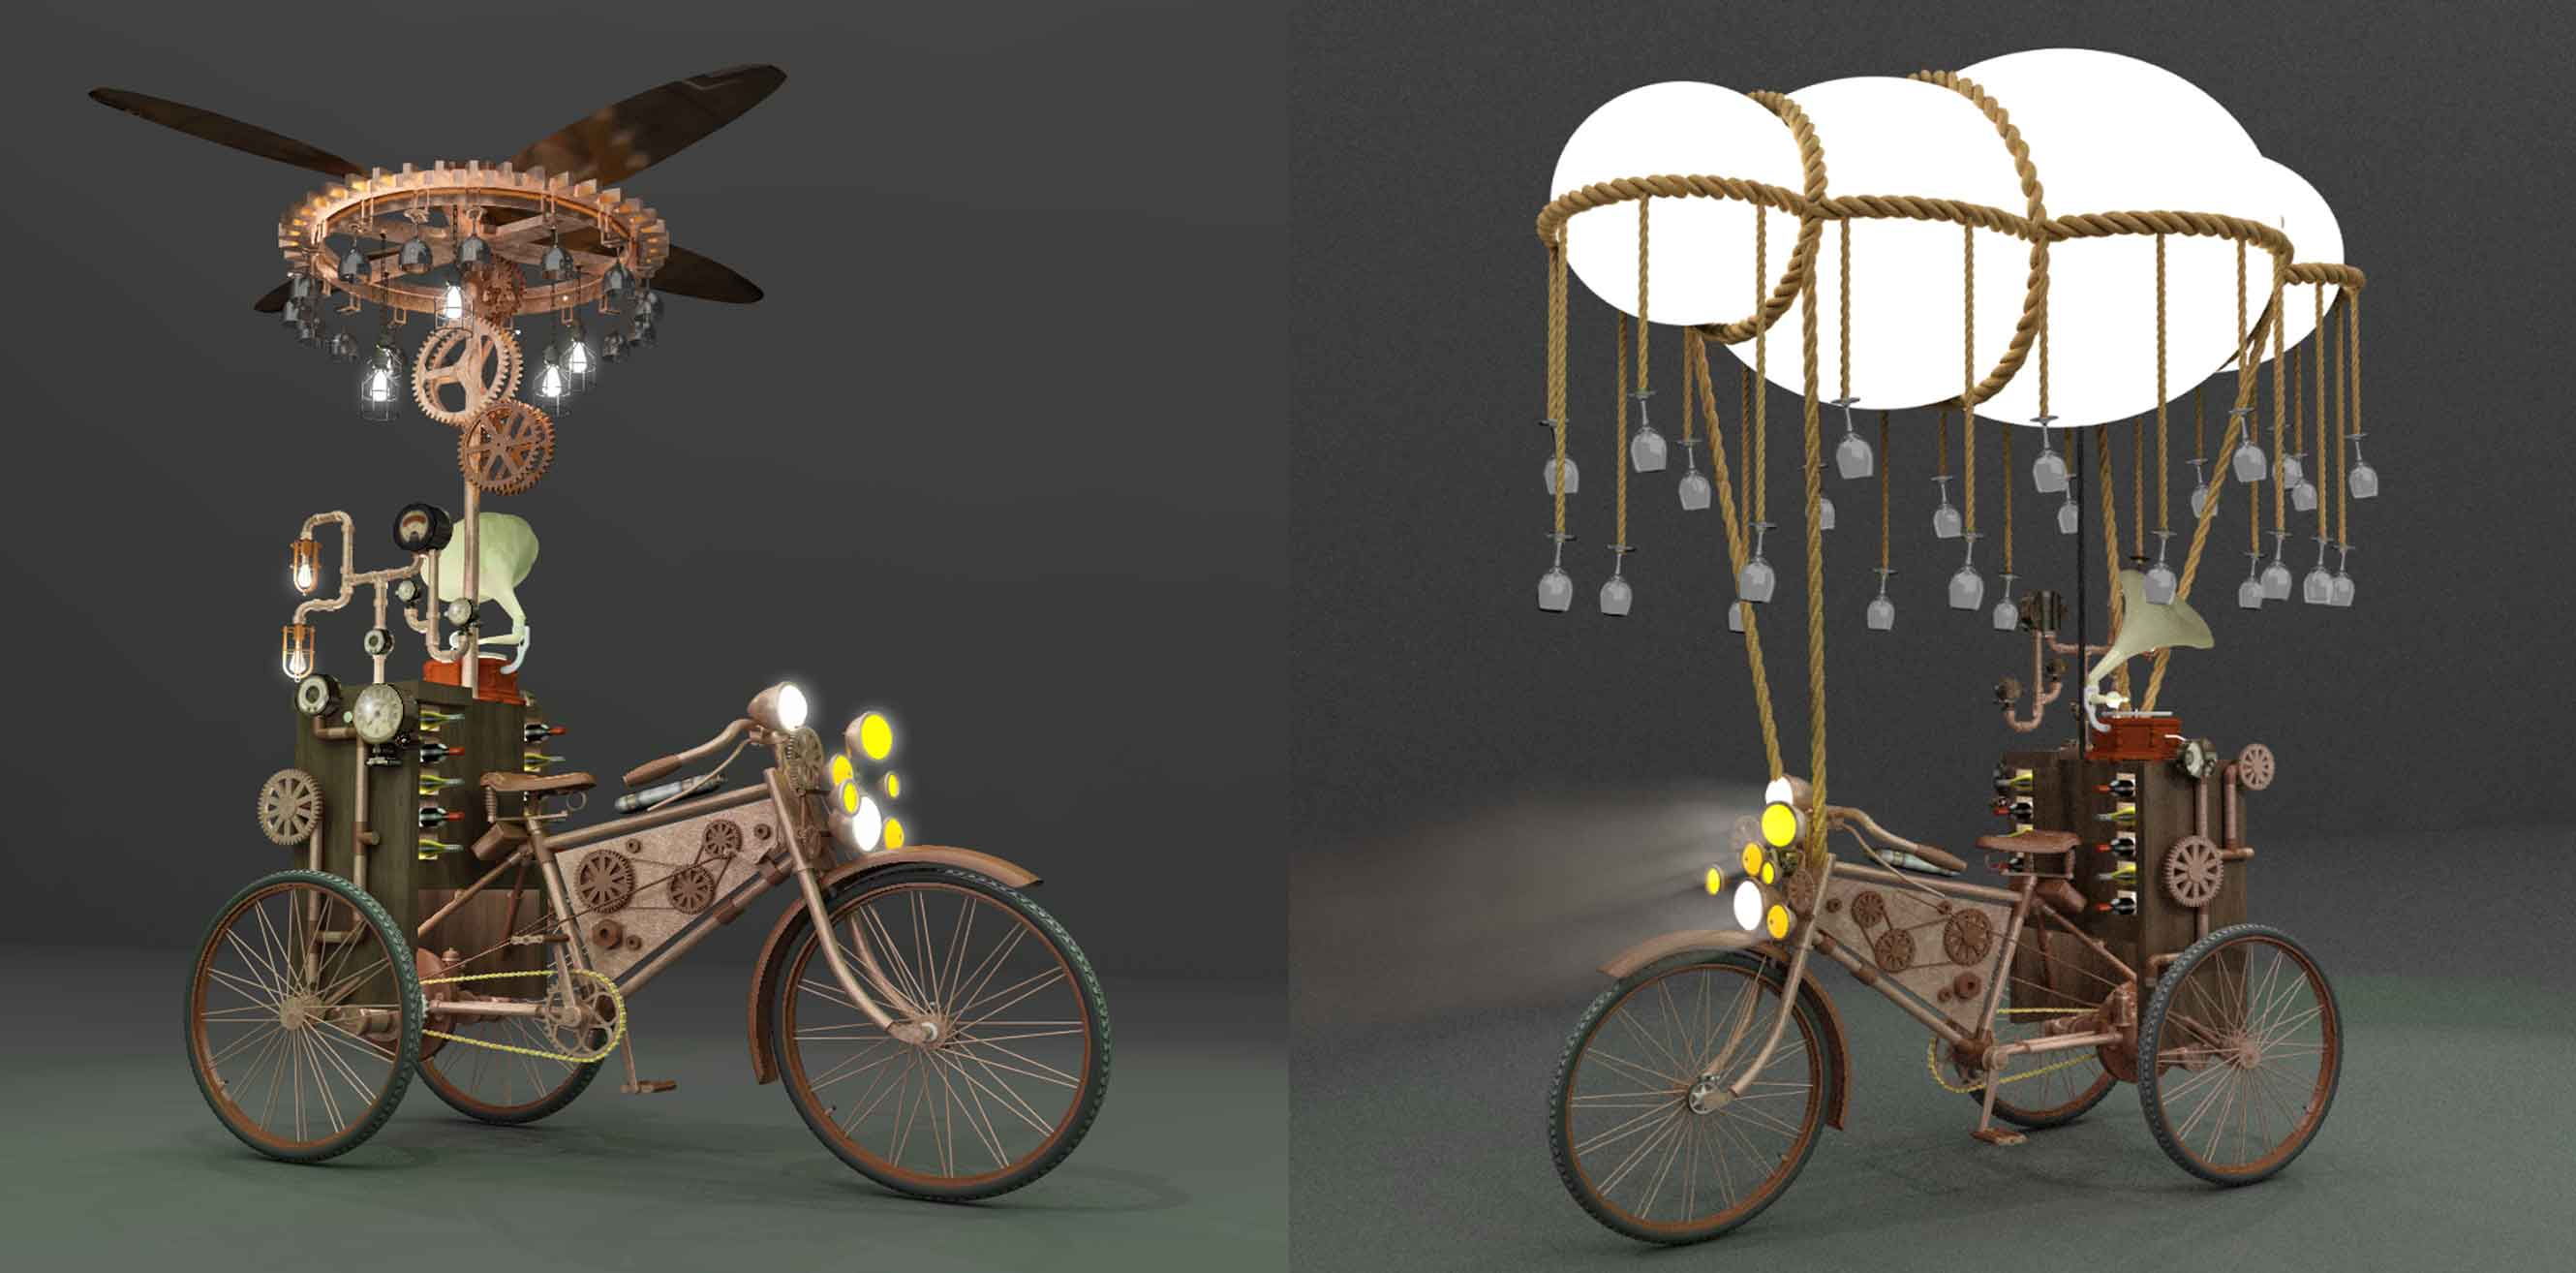 3D renderings of steampunk themed bicycles